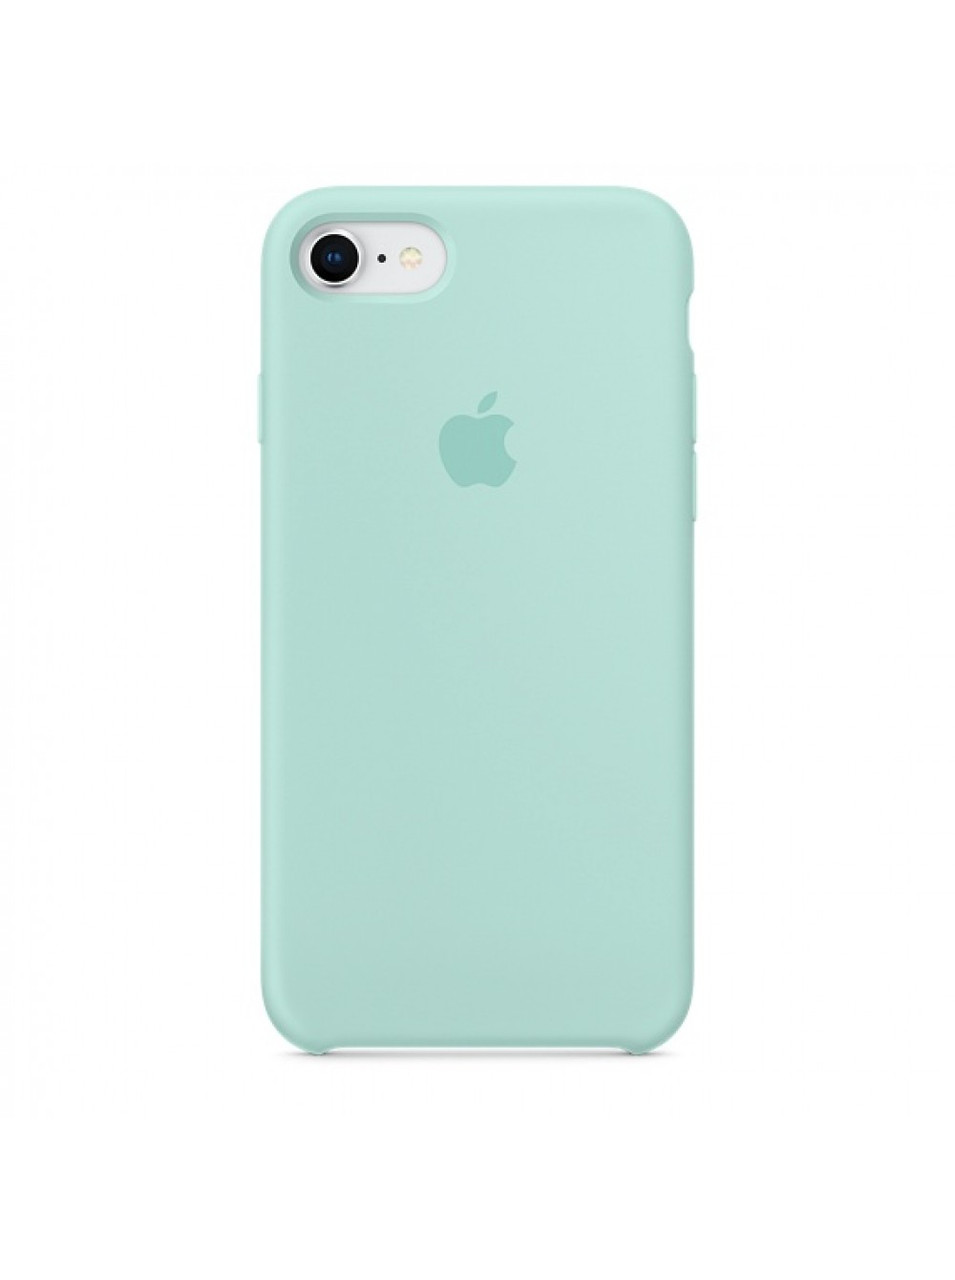 Чехол накладка silicone case для iphone 6s+ - marine green